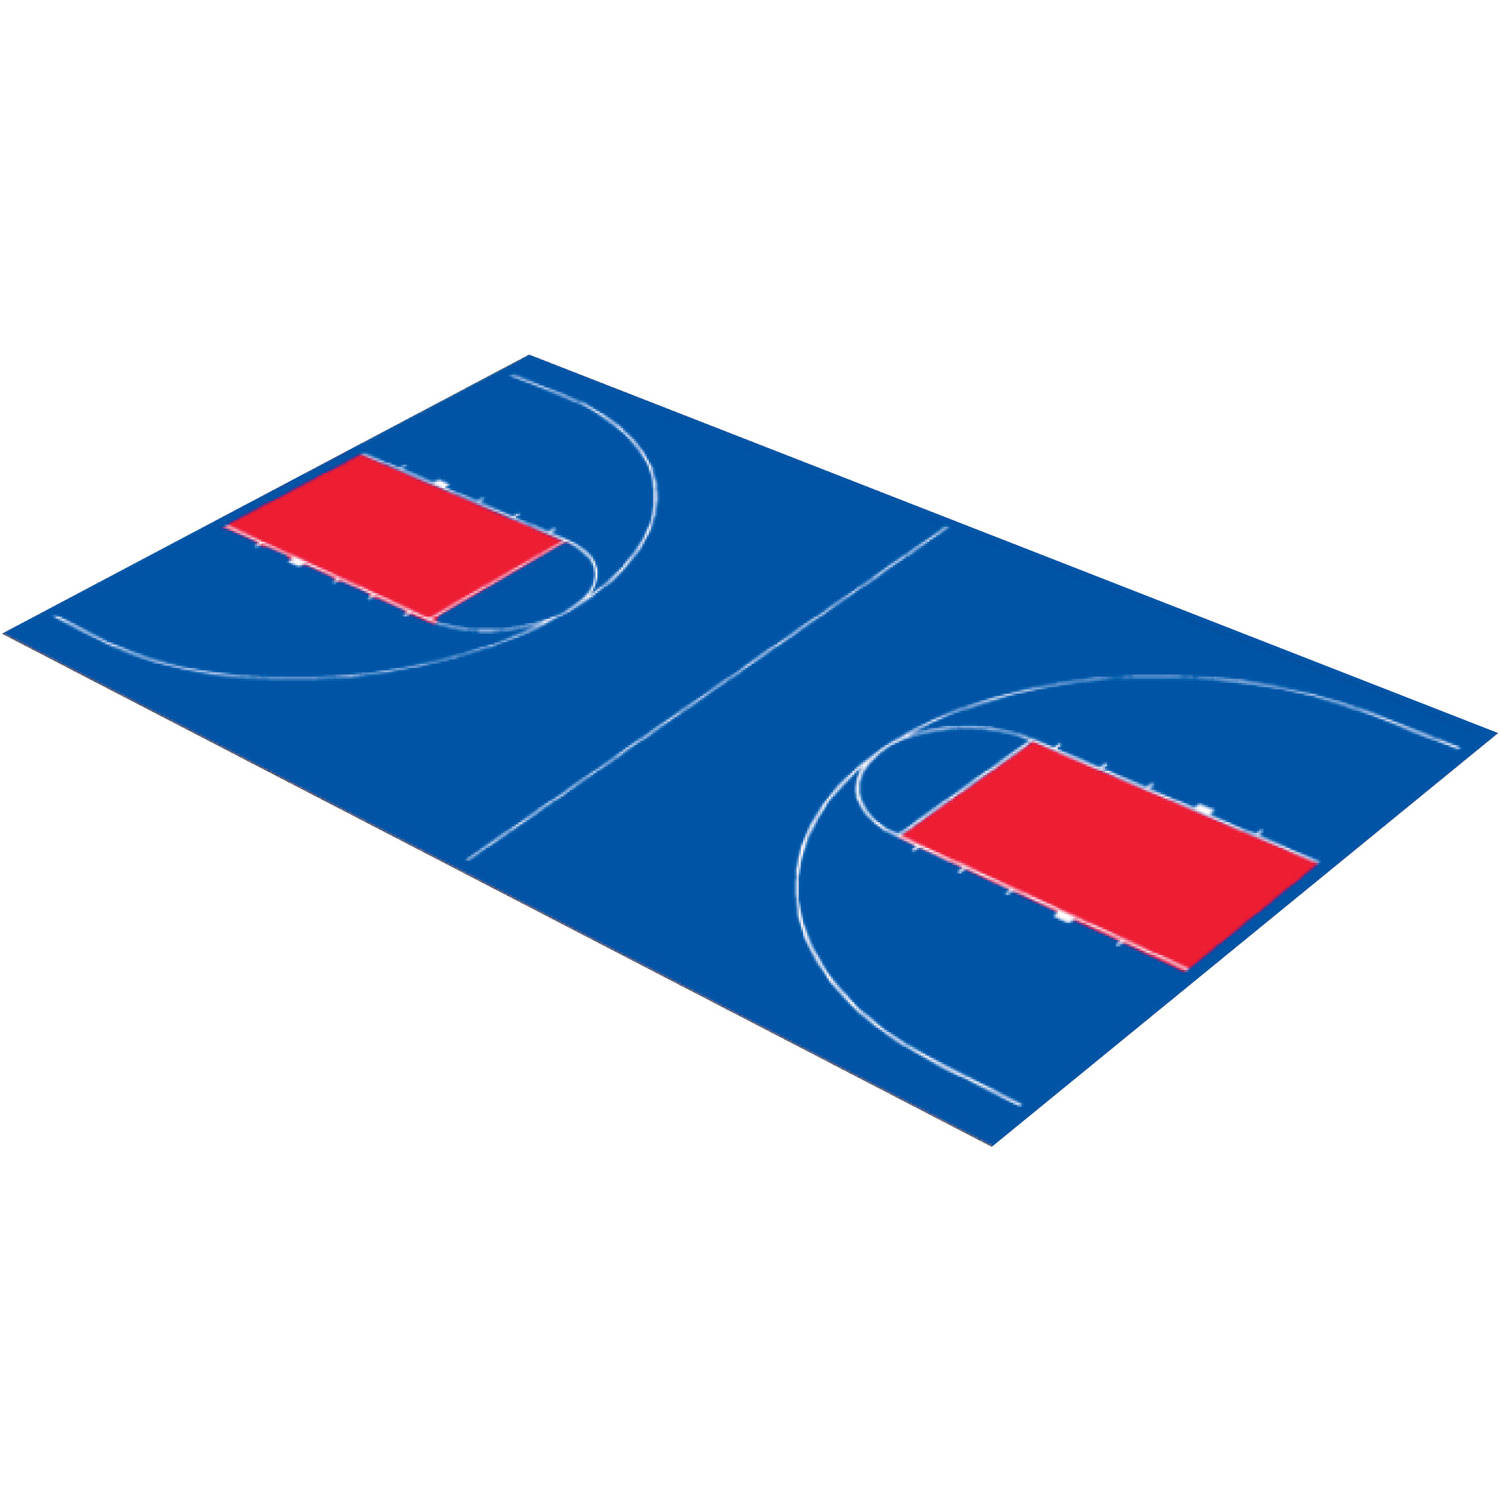 """DuraPlay Full Court Basketball Kit, 44'3"""" x 75'6"""", Royal Blue and Red"""